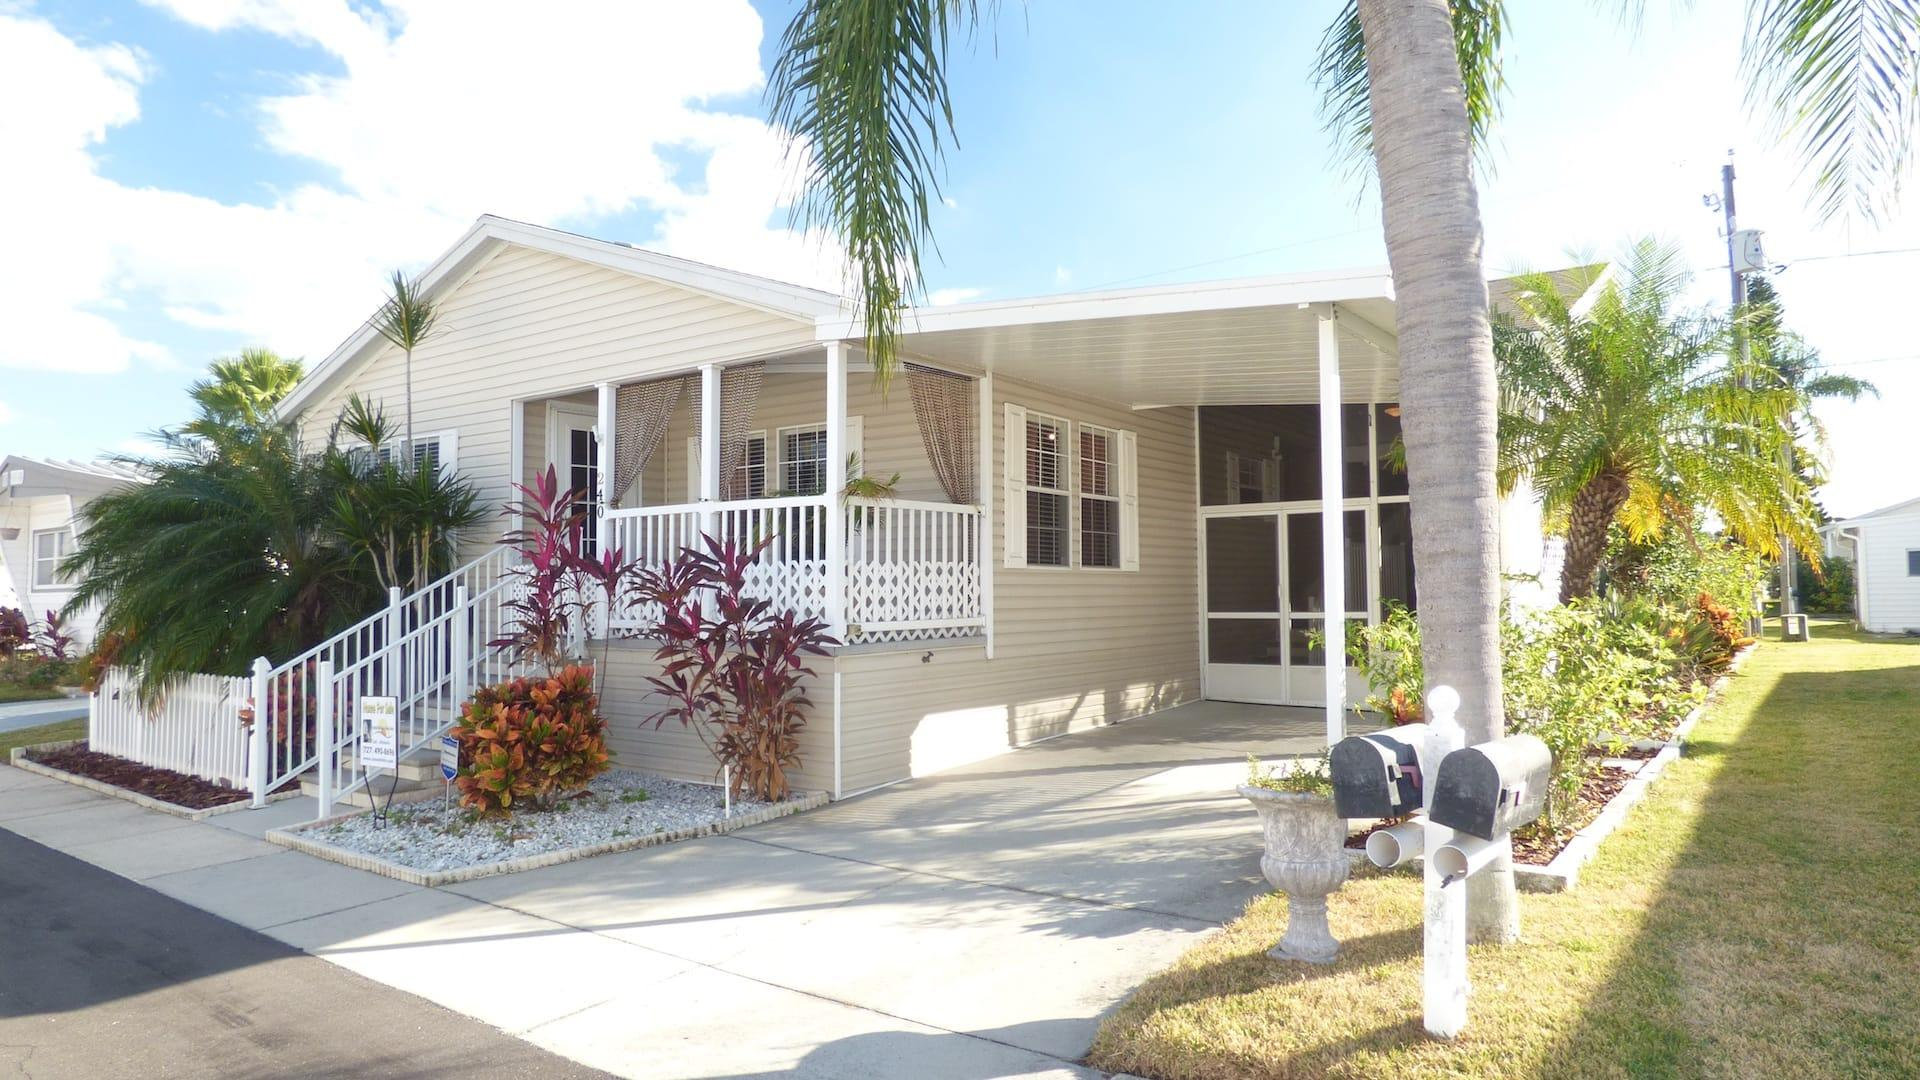 mobile homes for sale sarasota fl with Mobile Home For Sale Dunedin Fl Lake Haven 240 on Sarasota Waterfront Property together with ManufacturedHomeForSale as well T a Real Estate T a Homes For Sale T a Florida further Aid 33539 further Village Walk Sarasota.